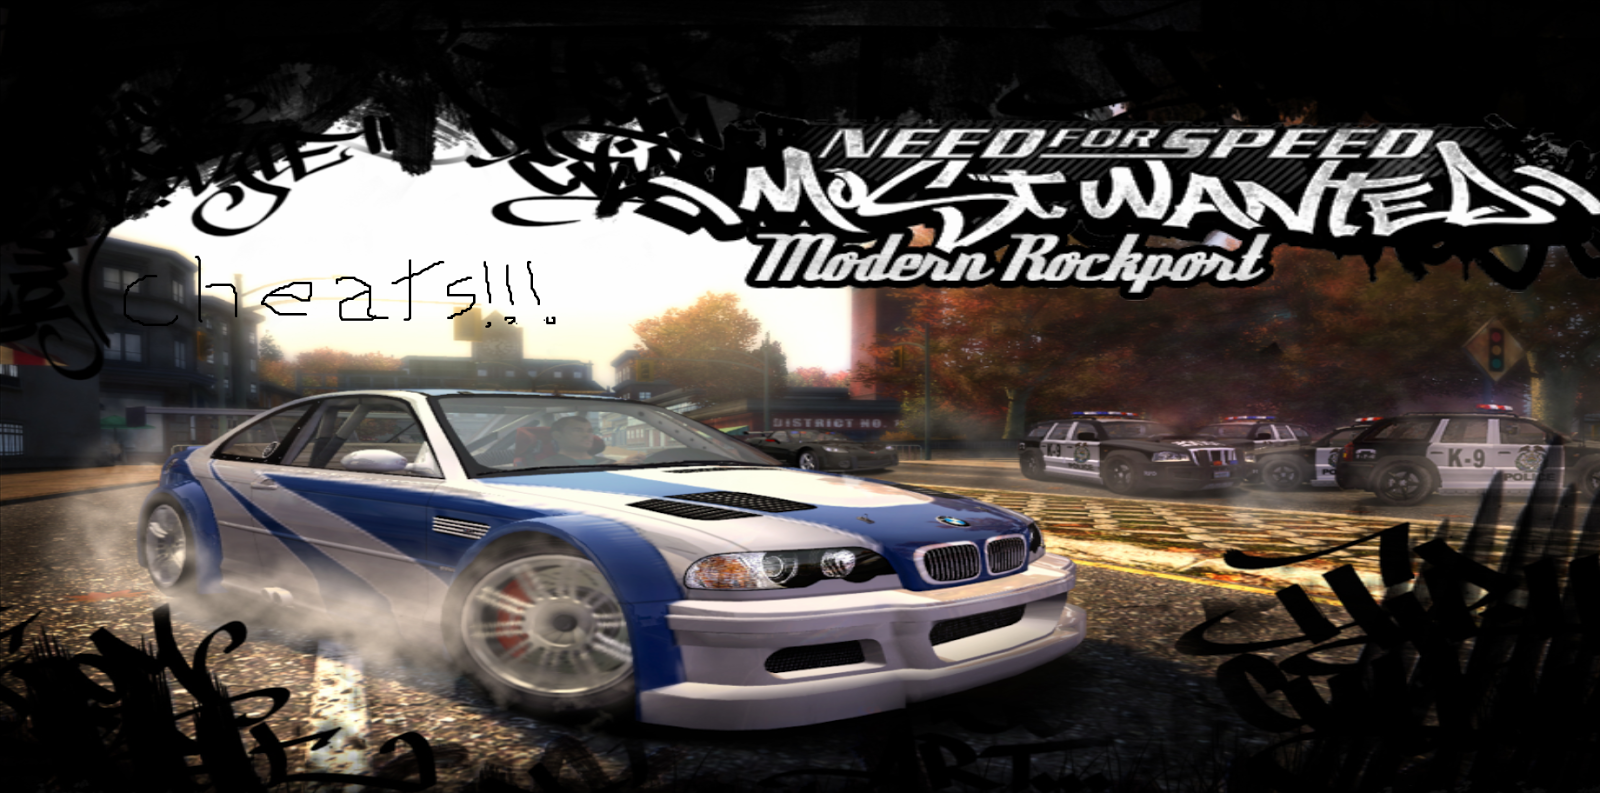 Jogos dicas e truques cheats need for speed most wanted Nfs most wanted para pc